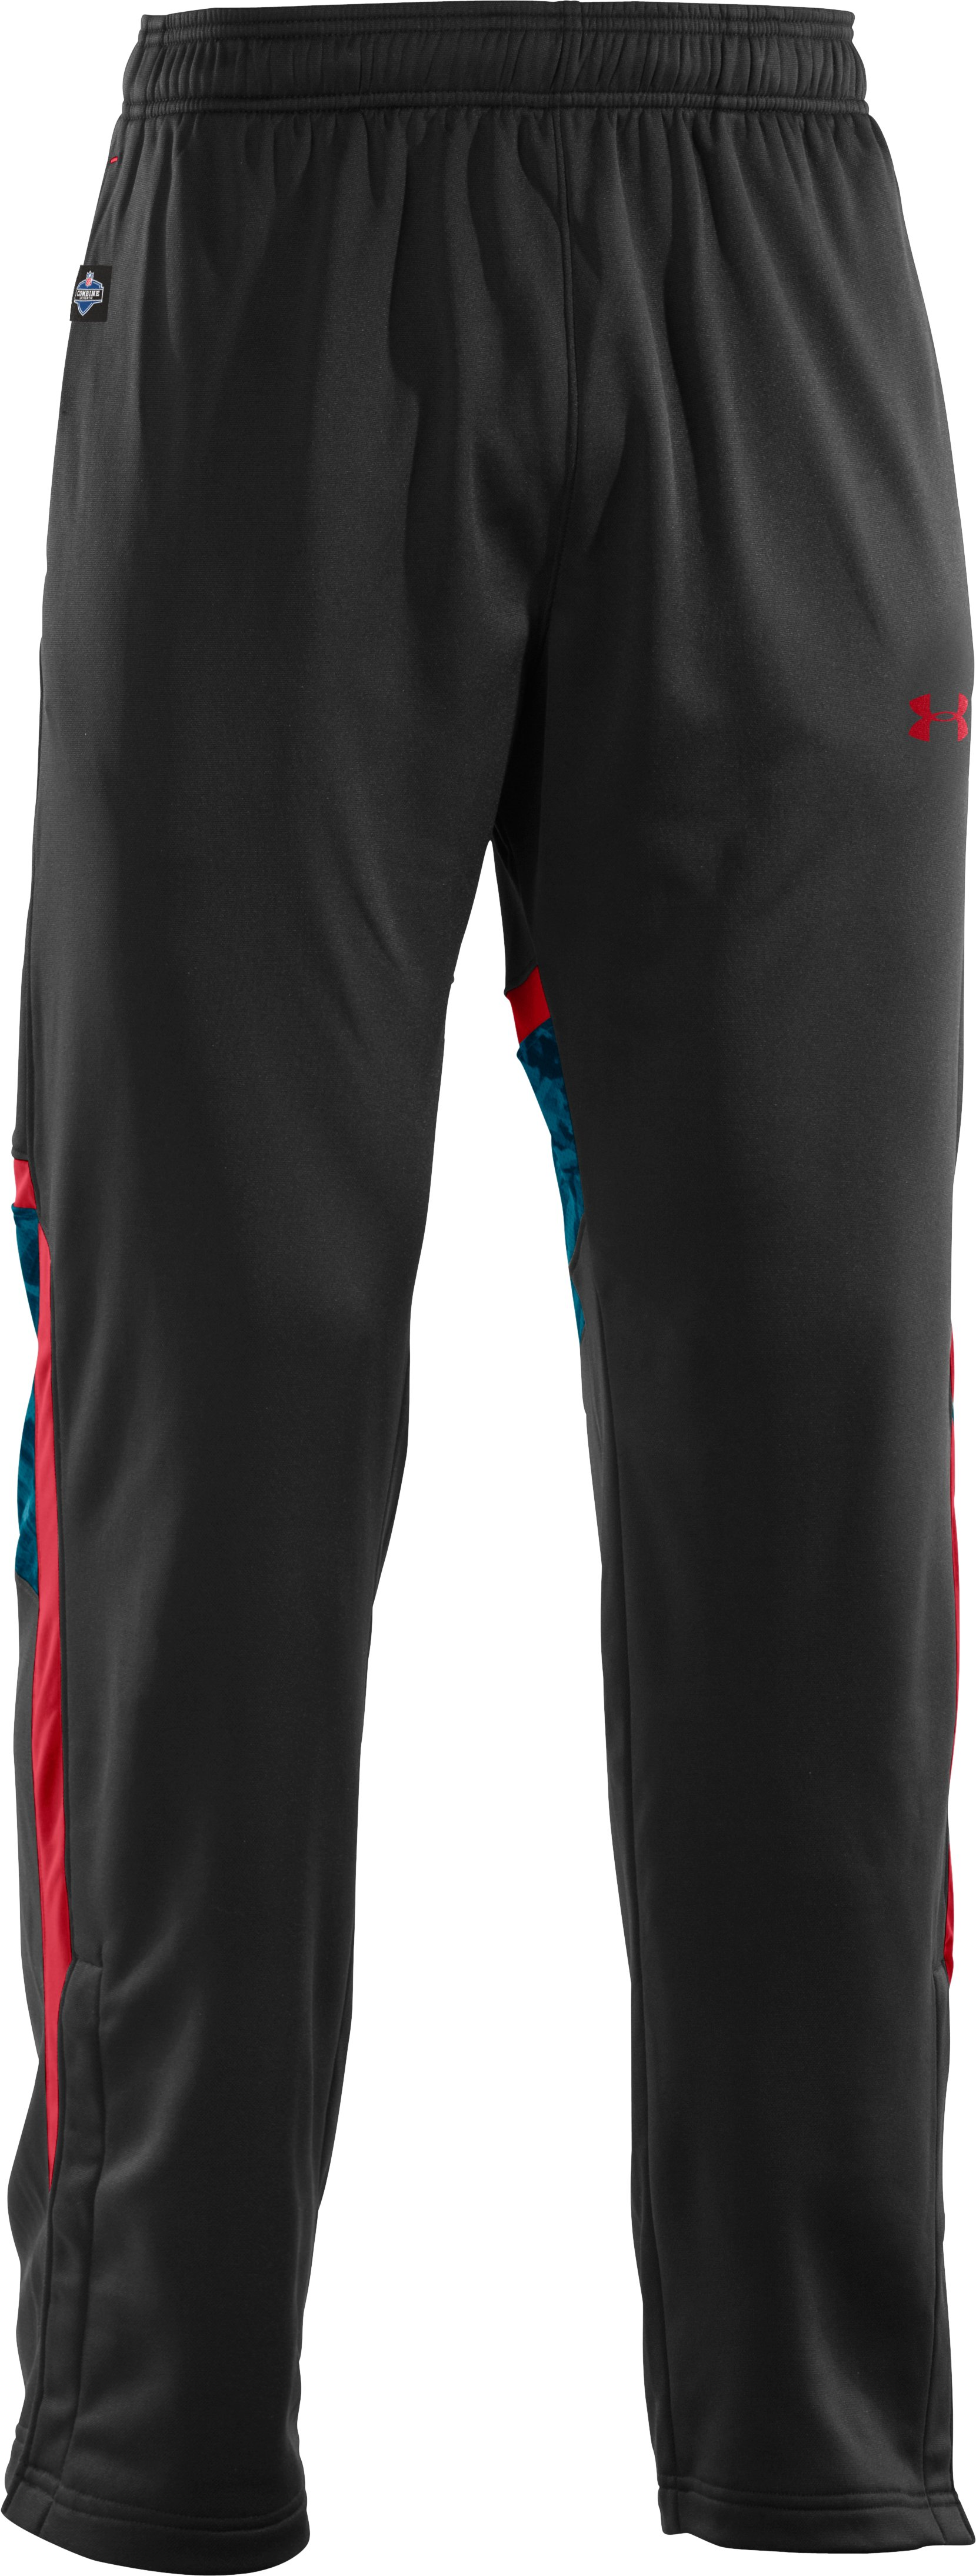 Men's NFL Combine Authentic Warm-Up Pants, Black